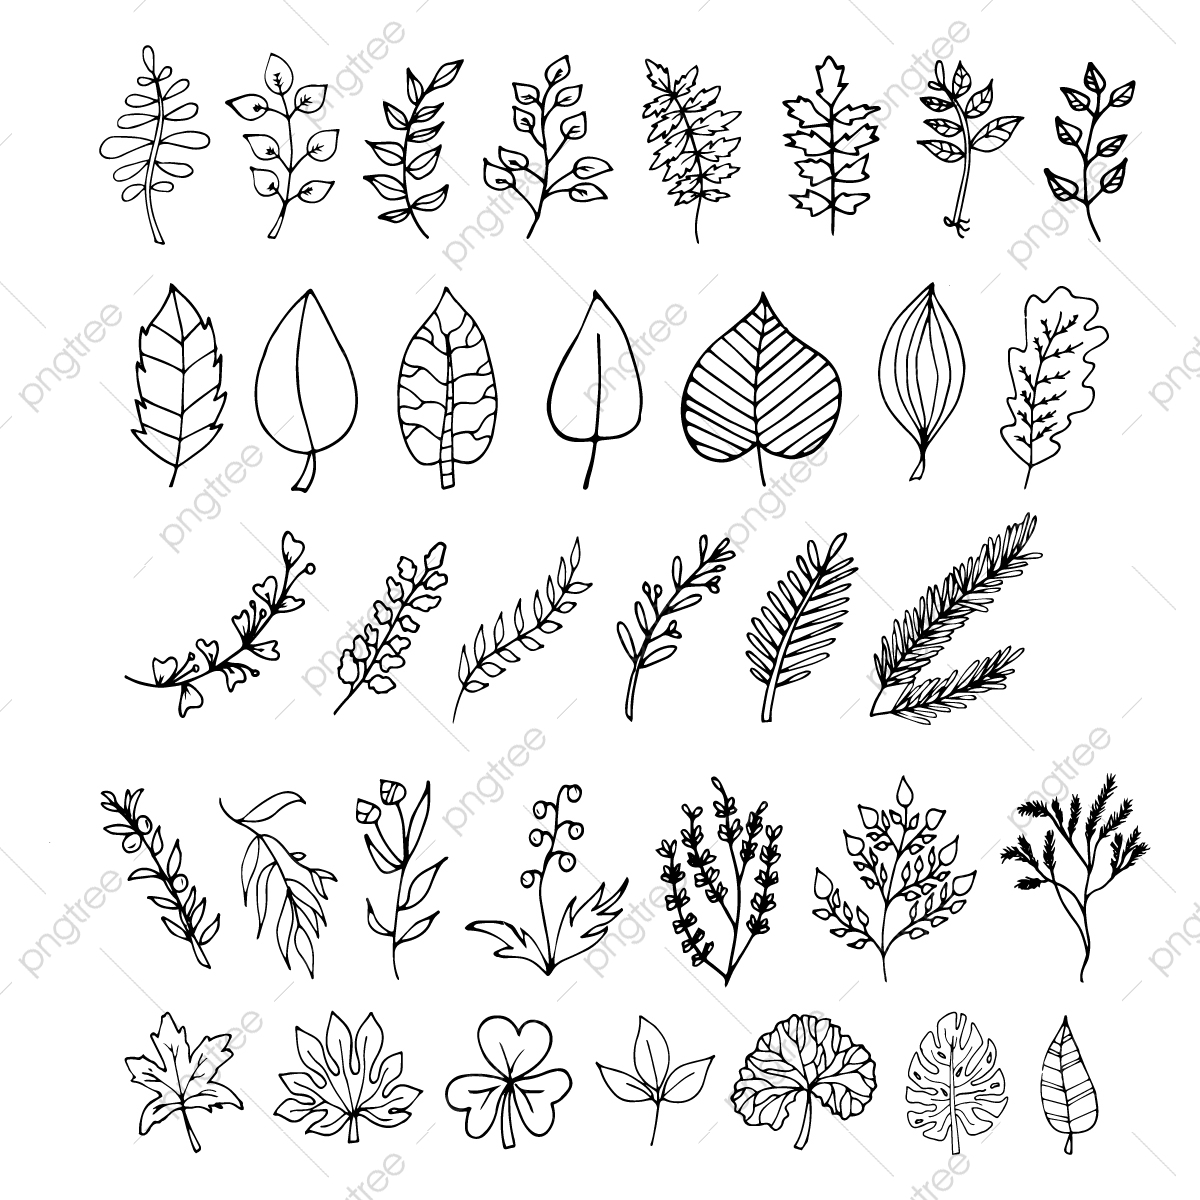 Plants Leaves Botanical Cute Cartoon Doodles Leaf Leaves Doodle Png And Vector With Transparent Background For Free Download